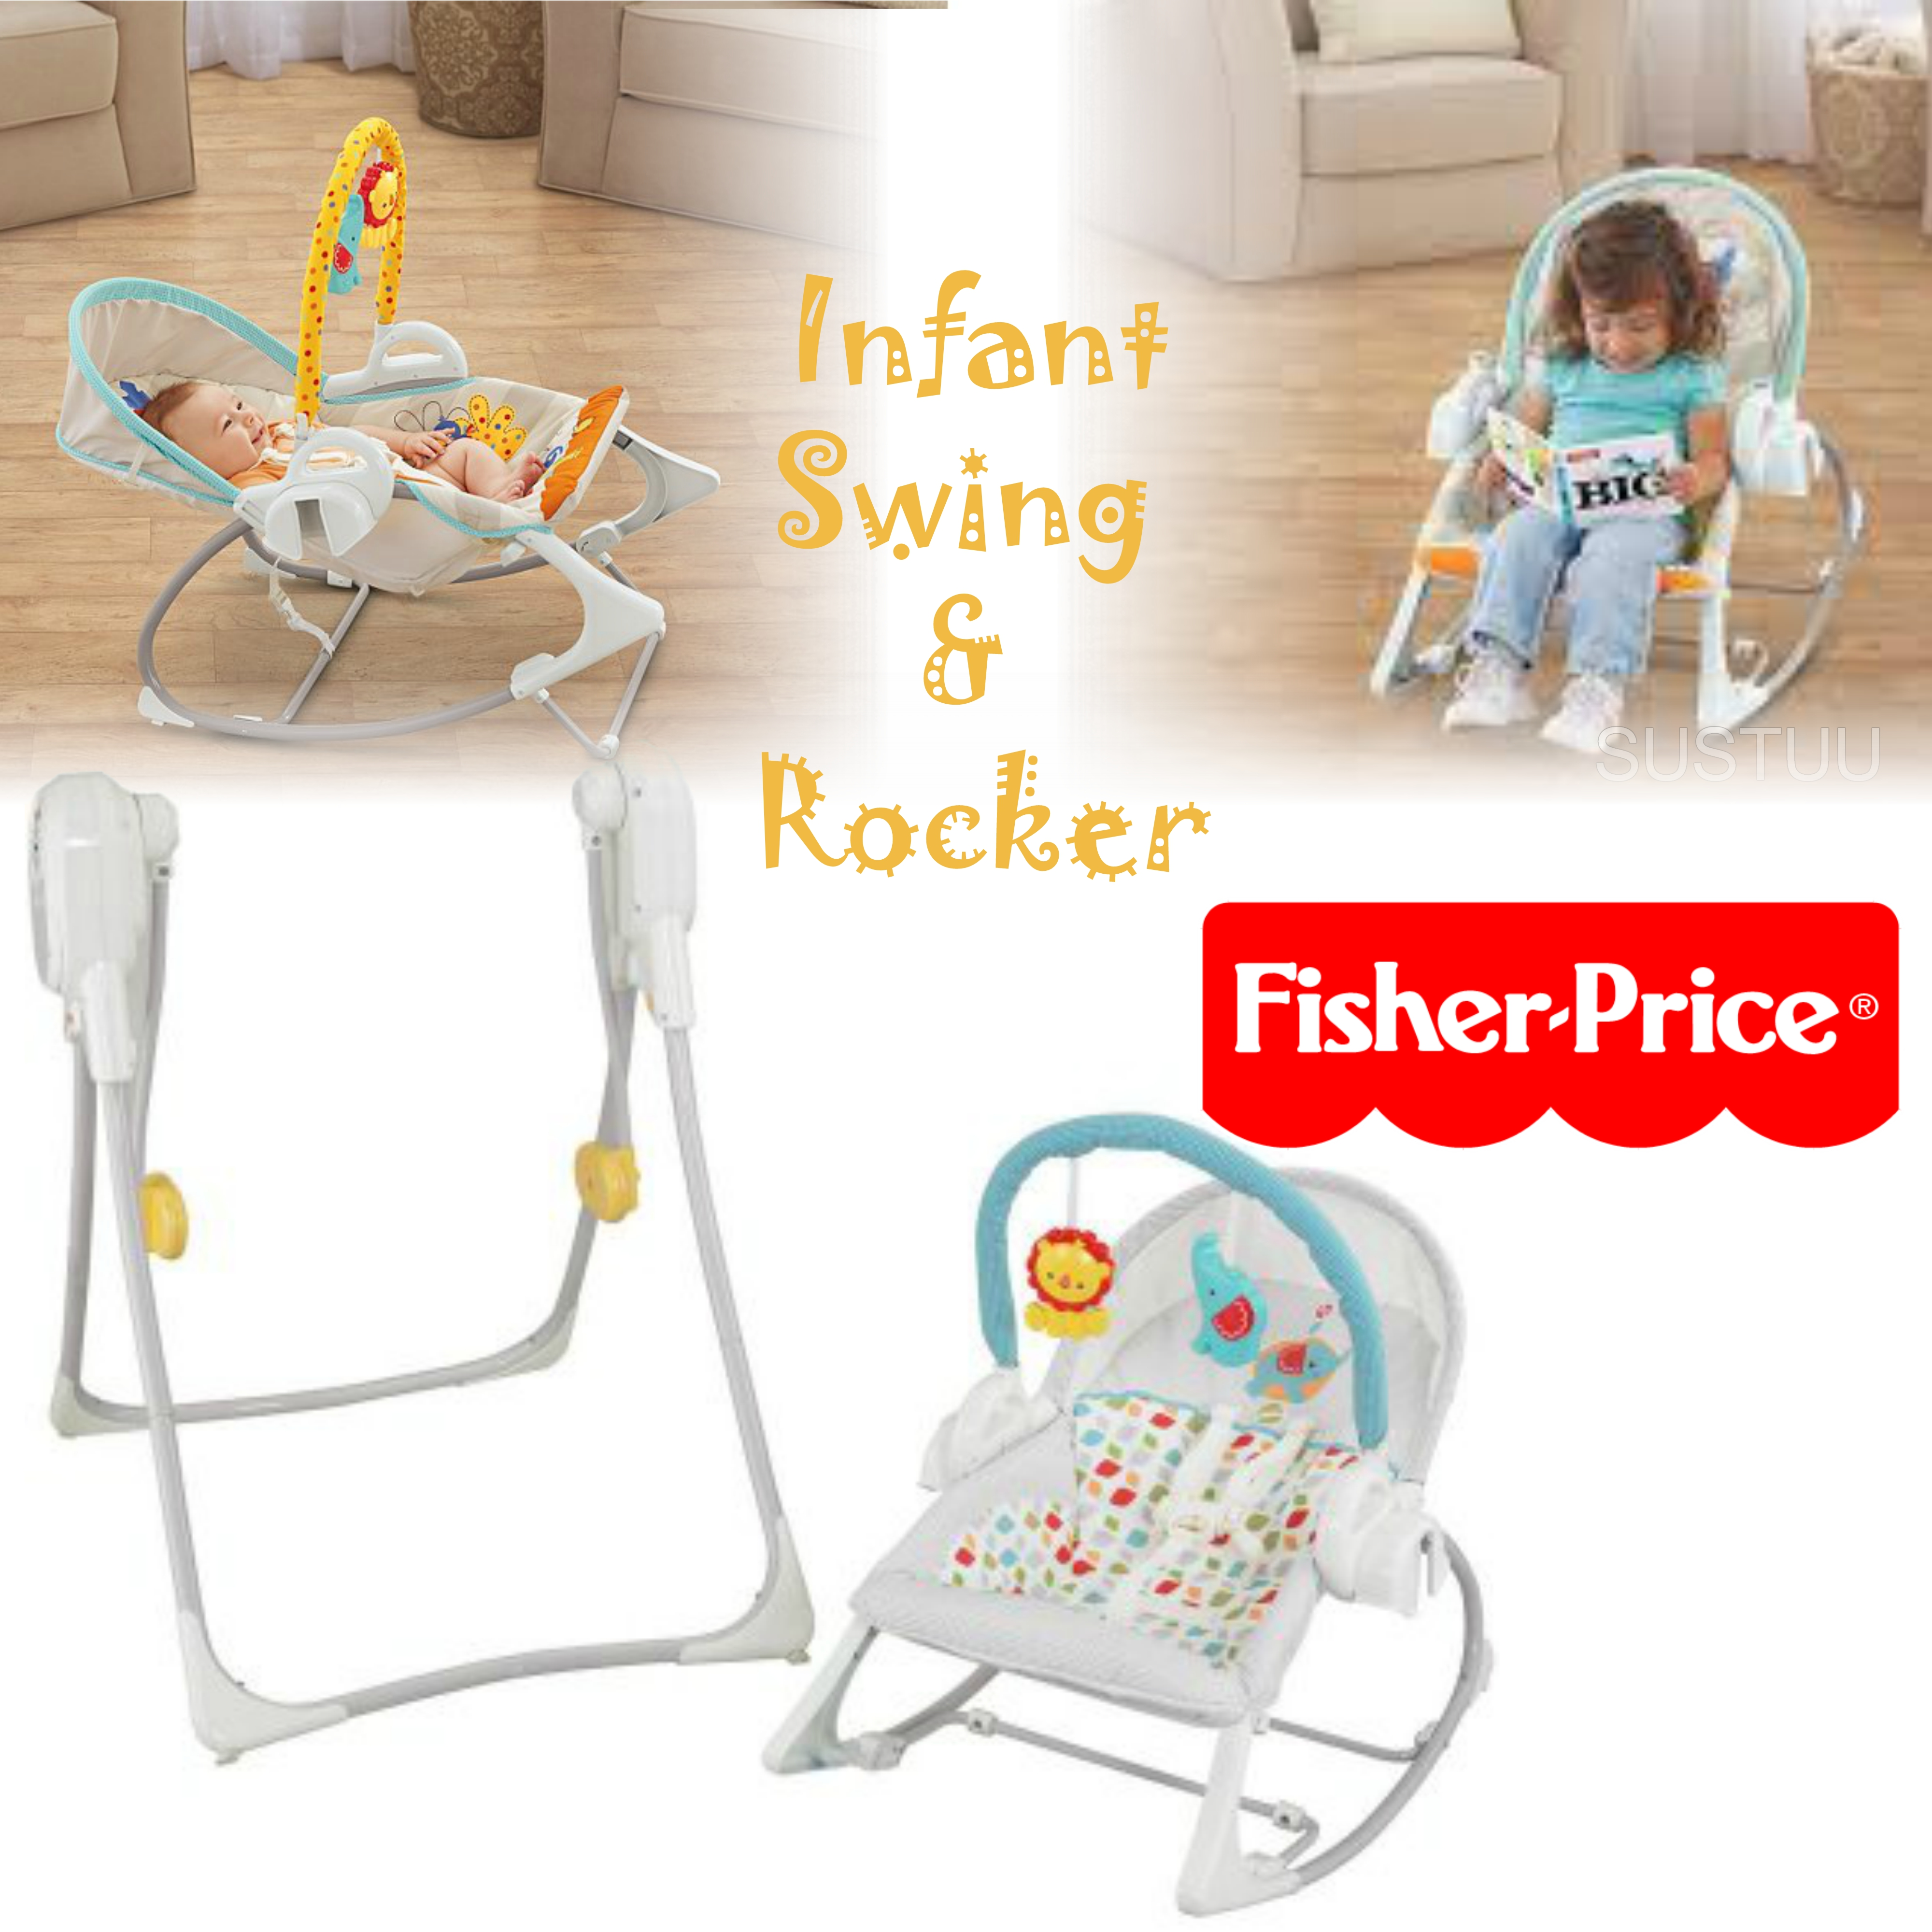 fisher price 3 in 1 swing n rocker infant seat nature sound baby